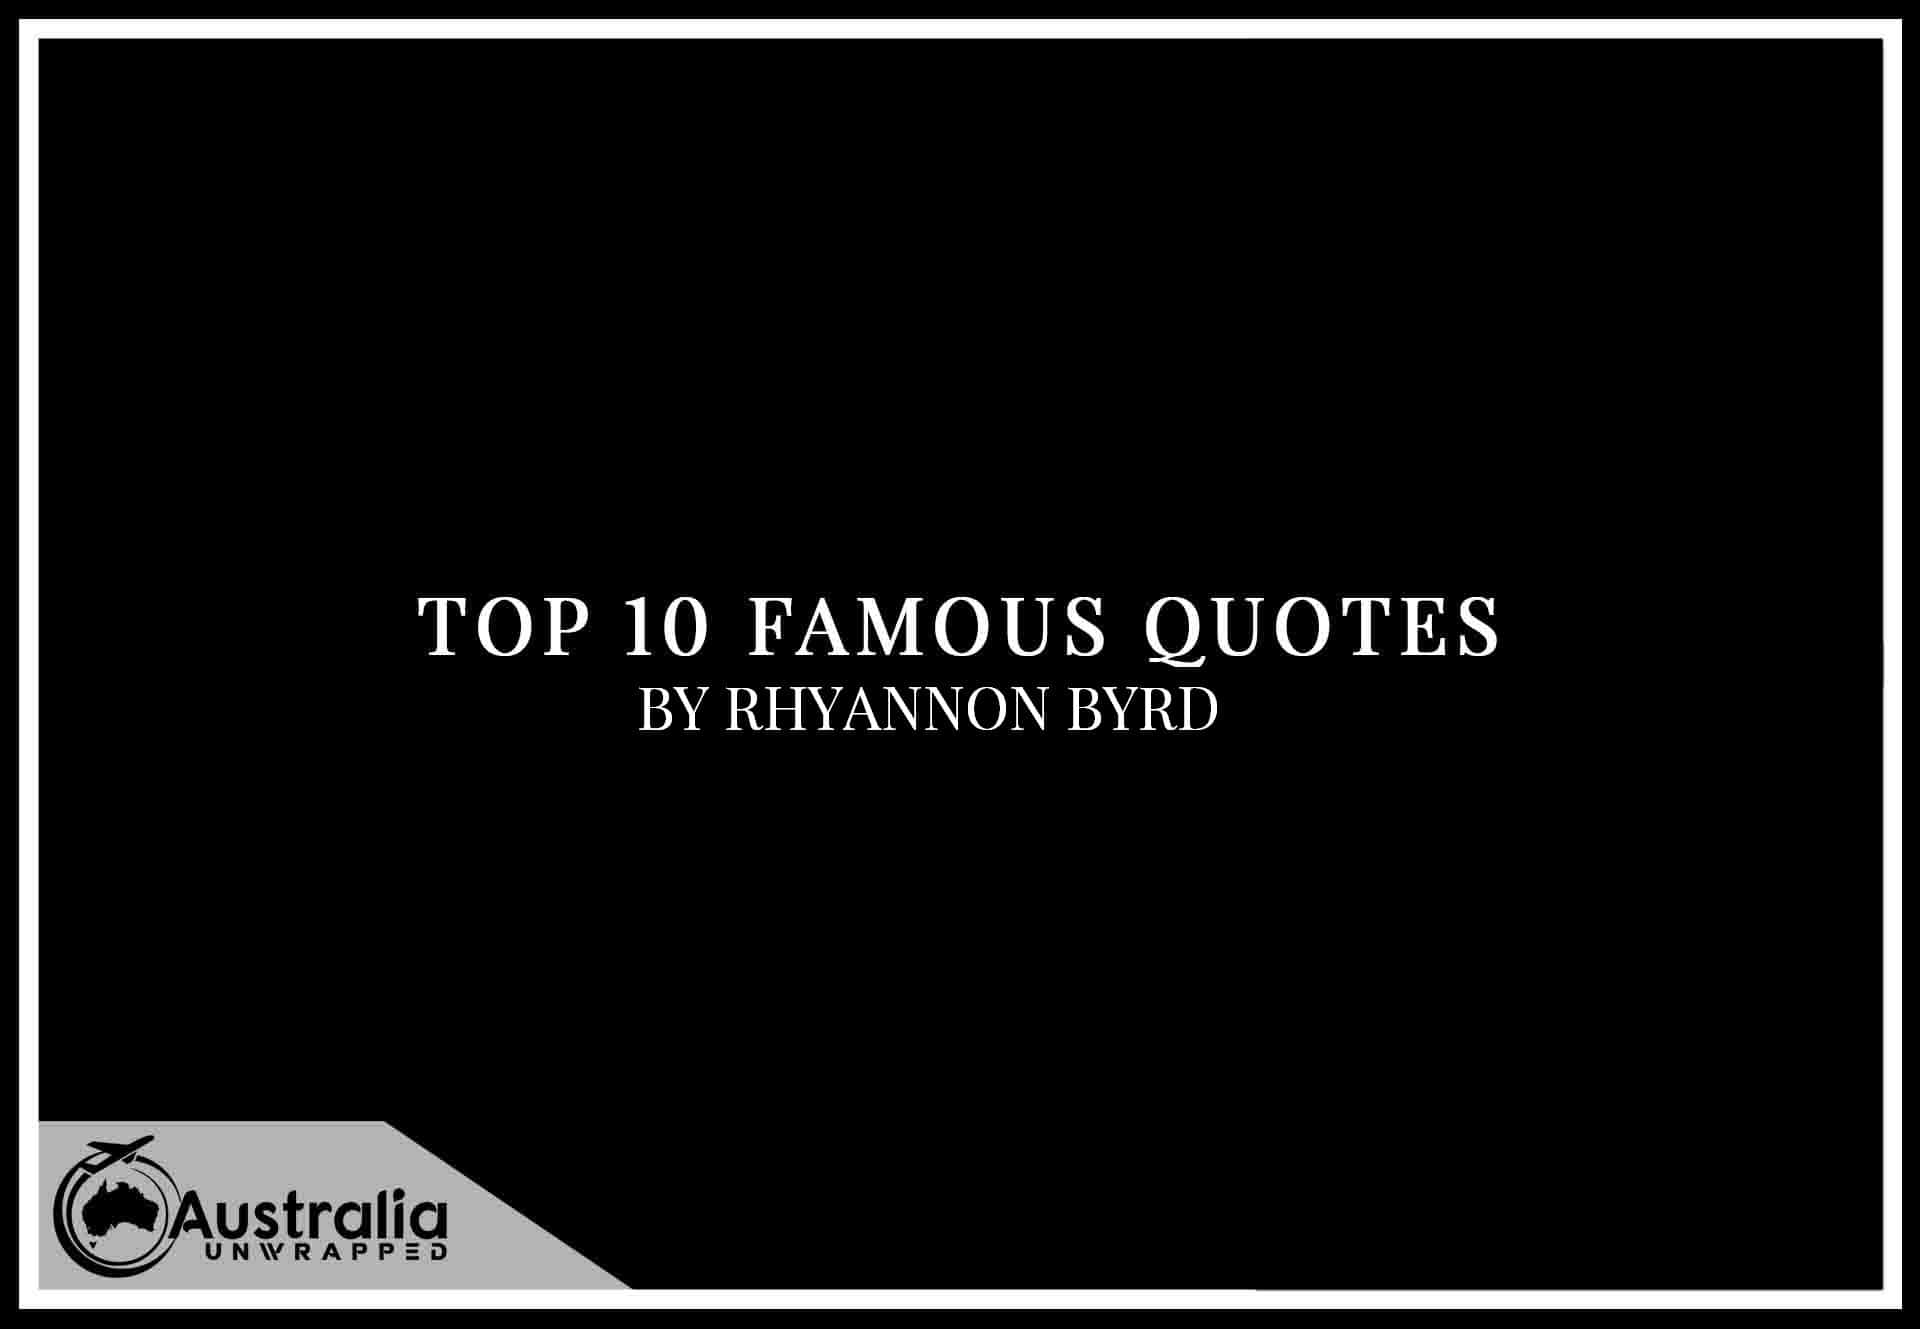 Top 10 Famous Quotes by Author Rhyannon Byrd